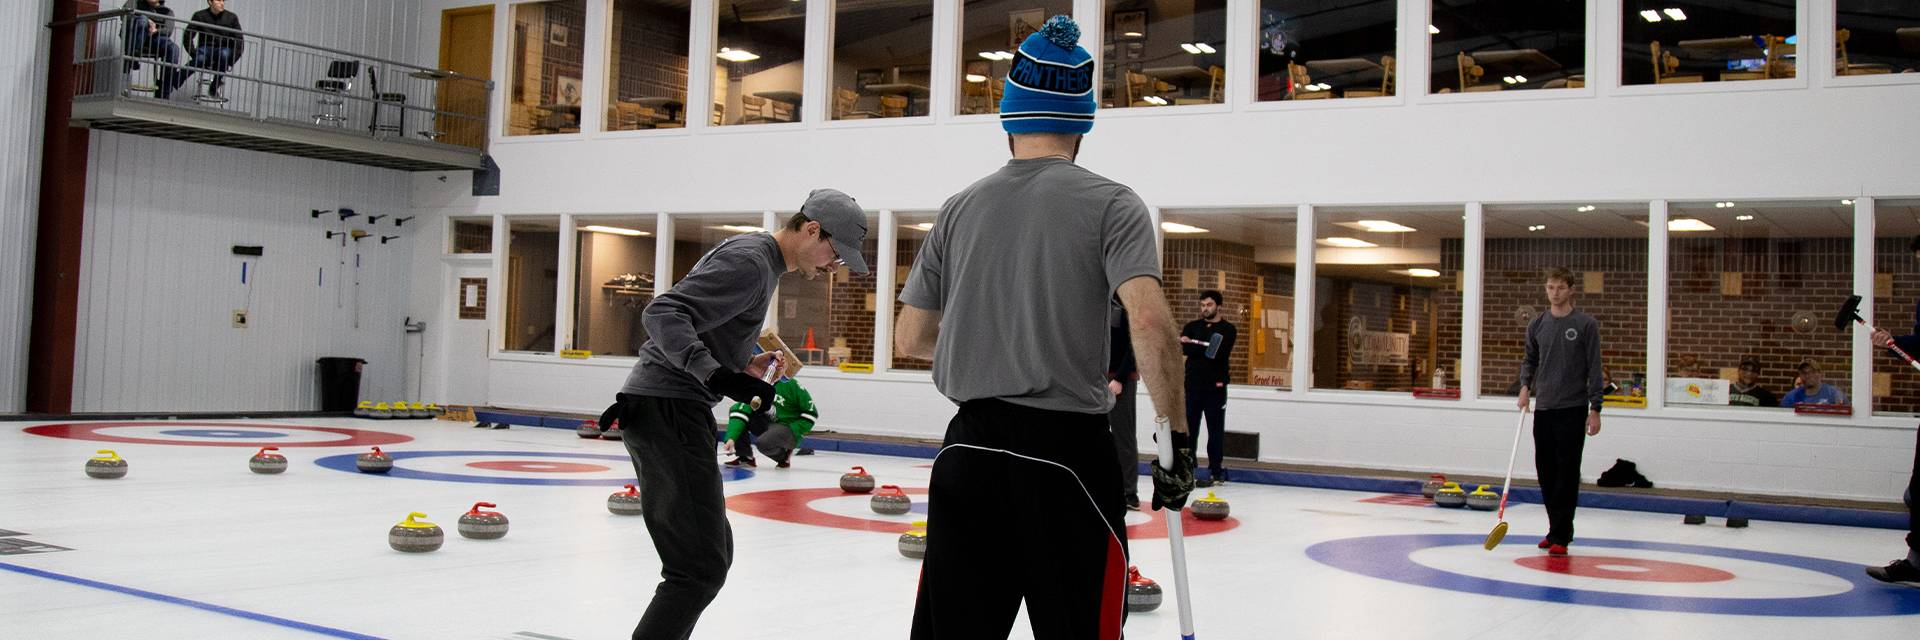 intramural curling